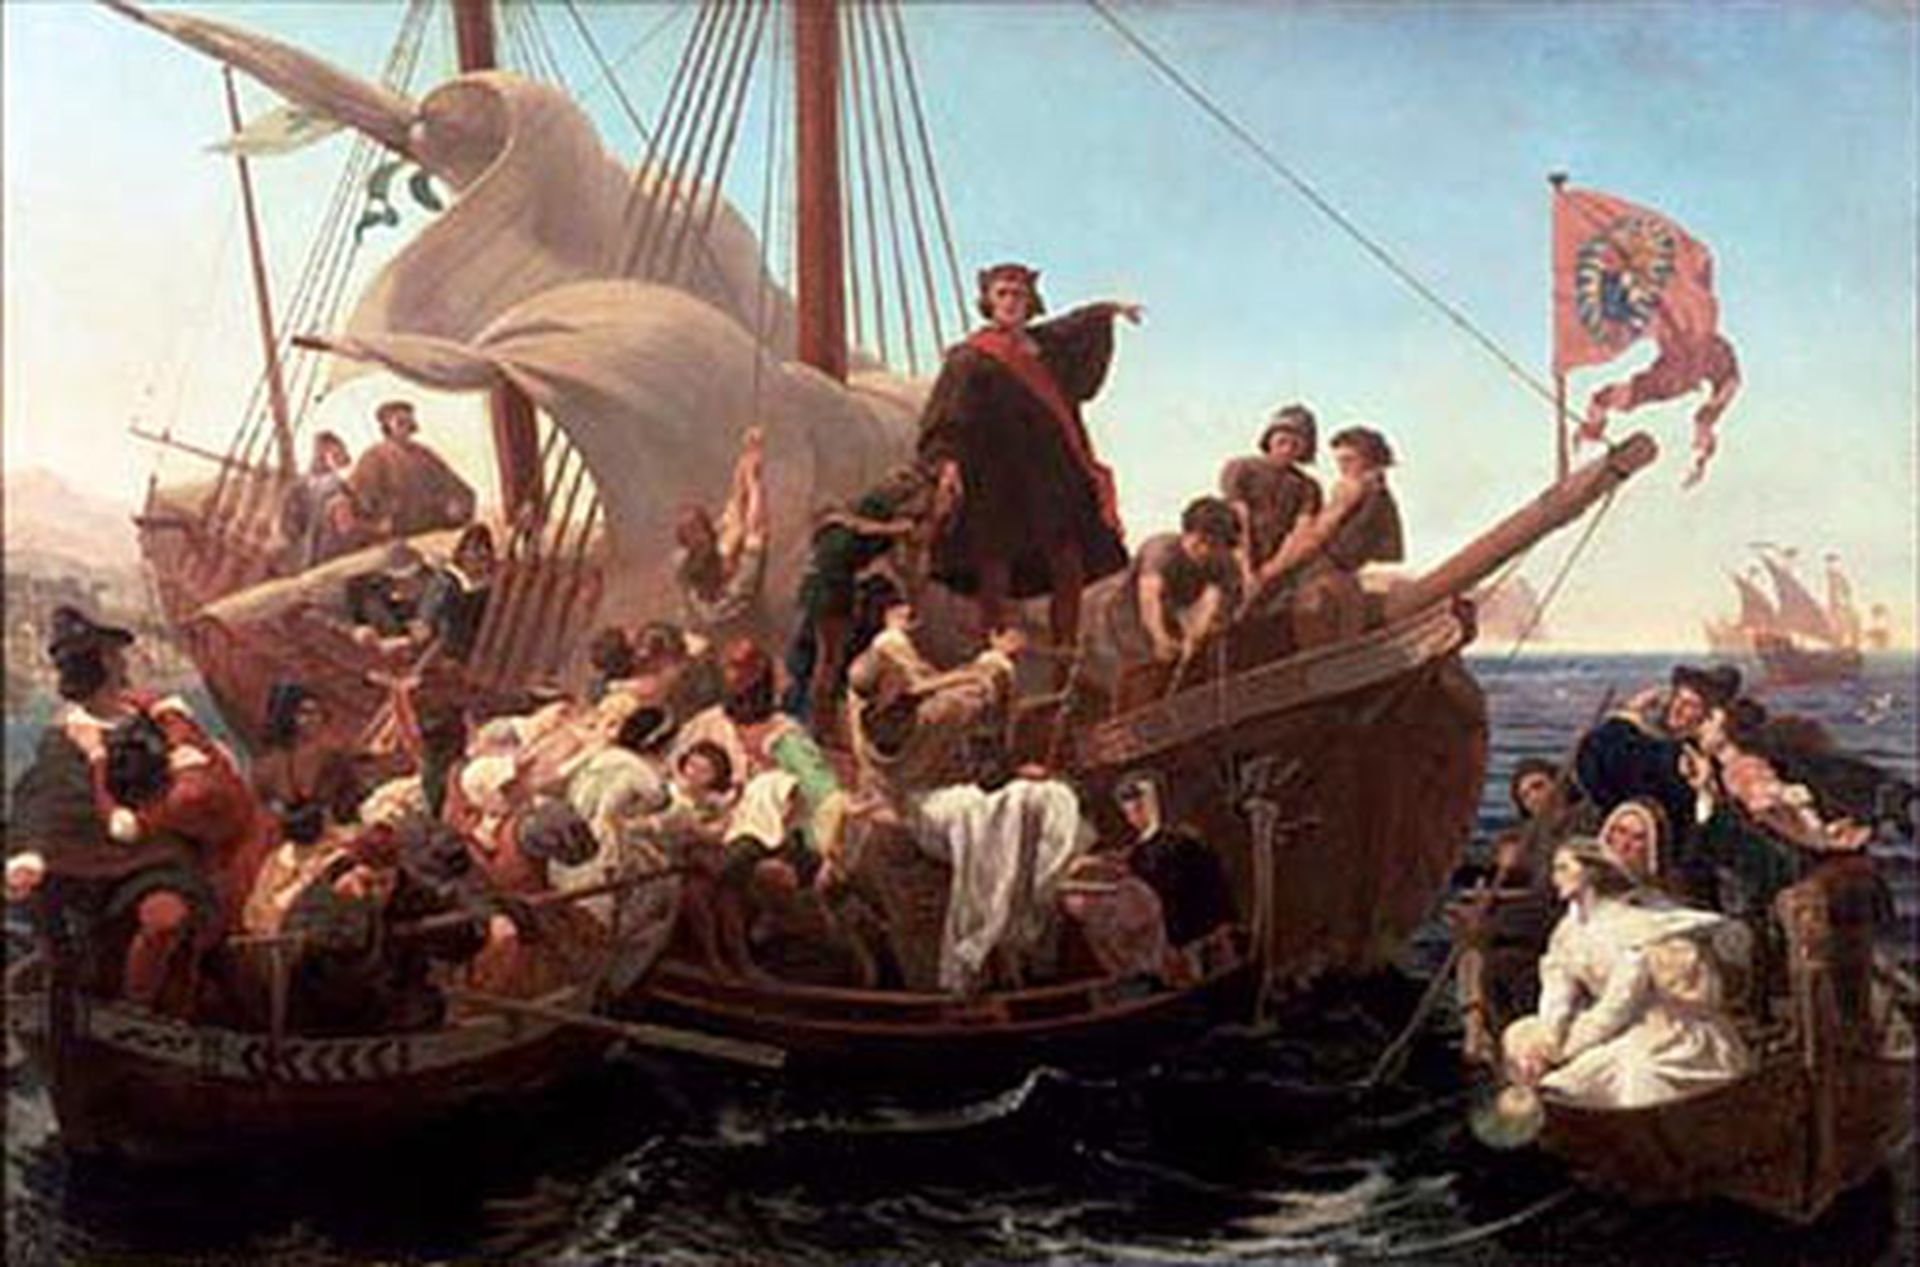 File:Christopher Columbus on Santa Maria in 1492..jpg